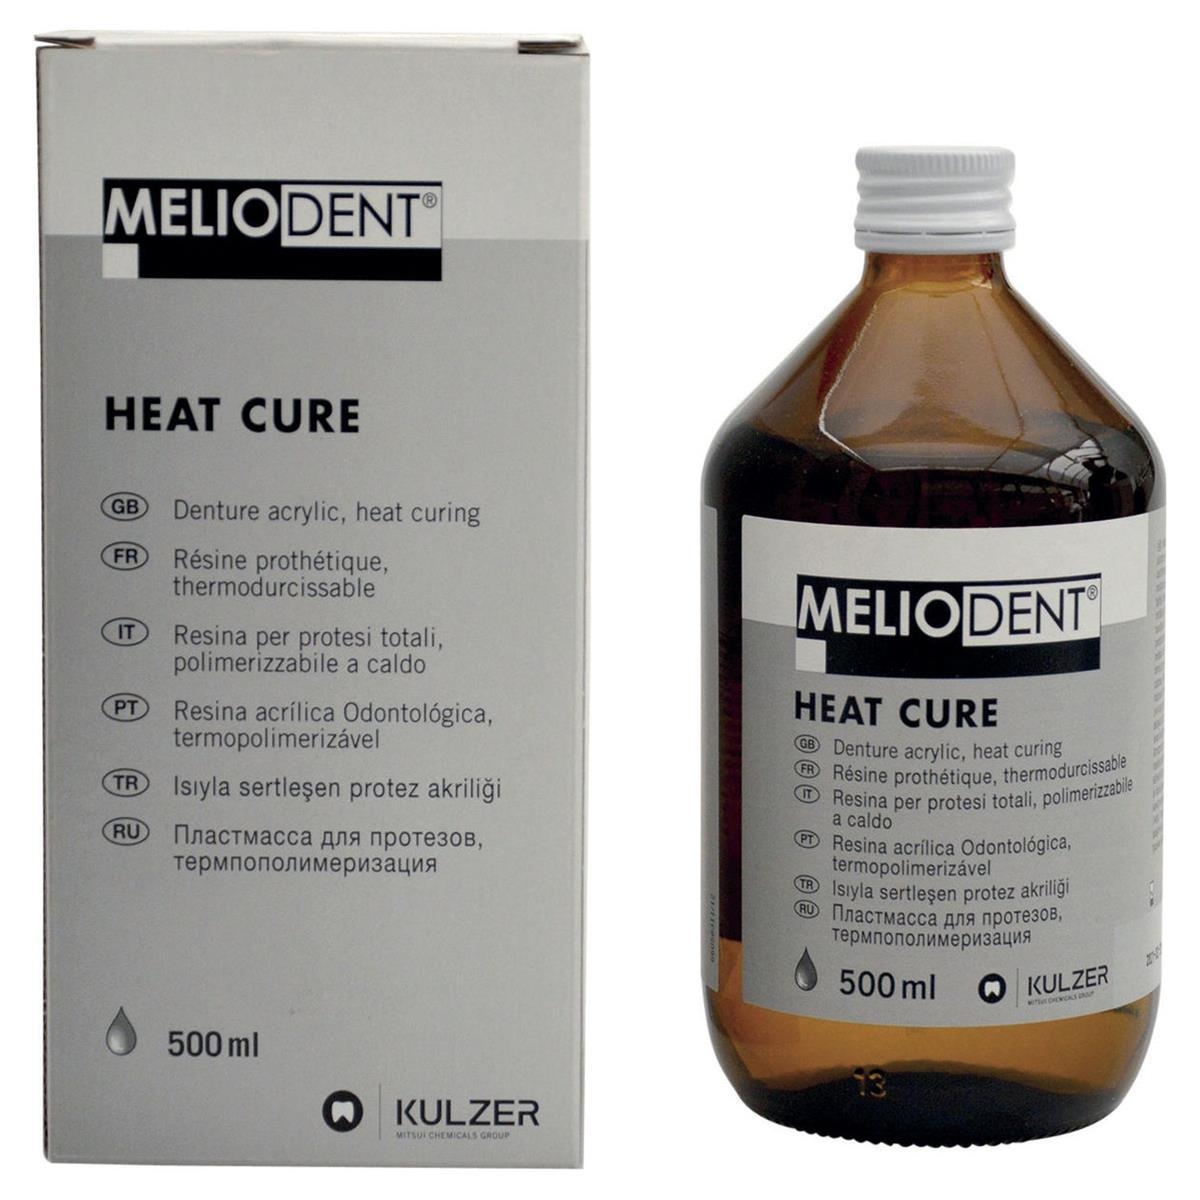 MELIODENT HEAT CURE - Liquido 500 ml Kulzer MELIODENT HEAT CURE - Liquido 500 ml